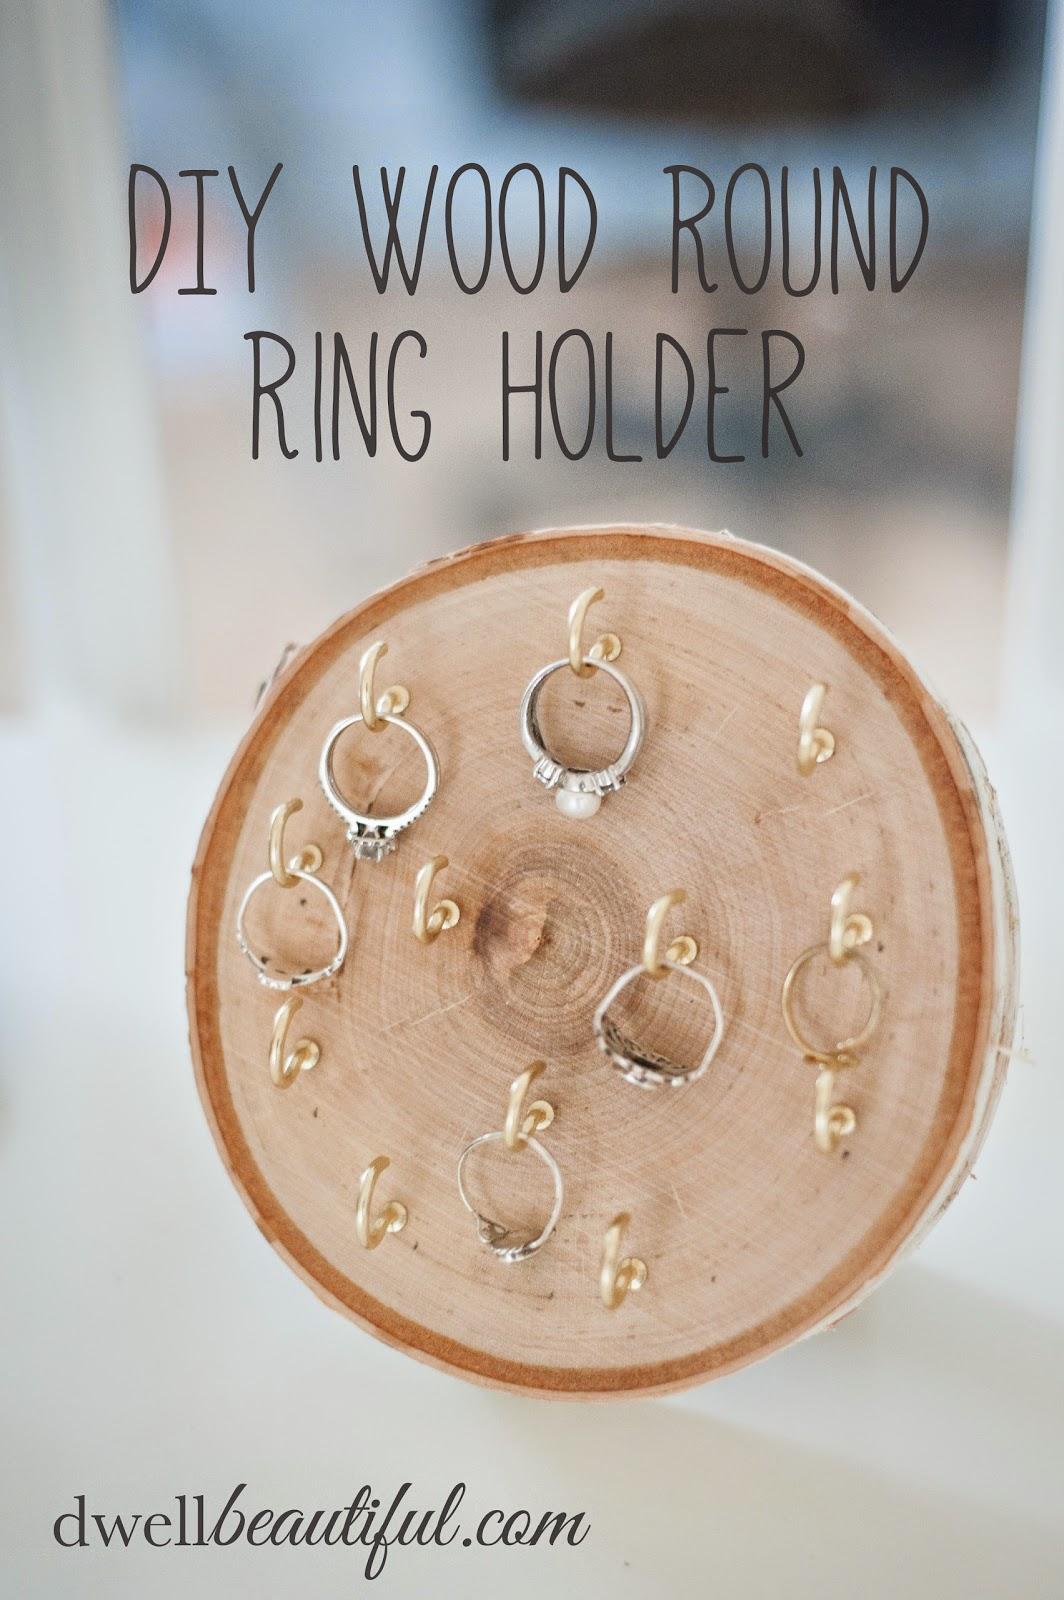 DIY Wood Round Ring Holder on Diane's Vintage Zest!